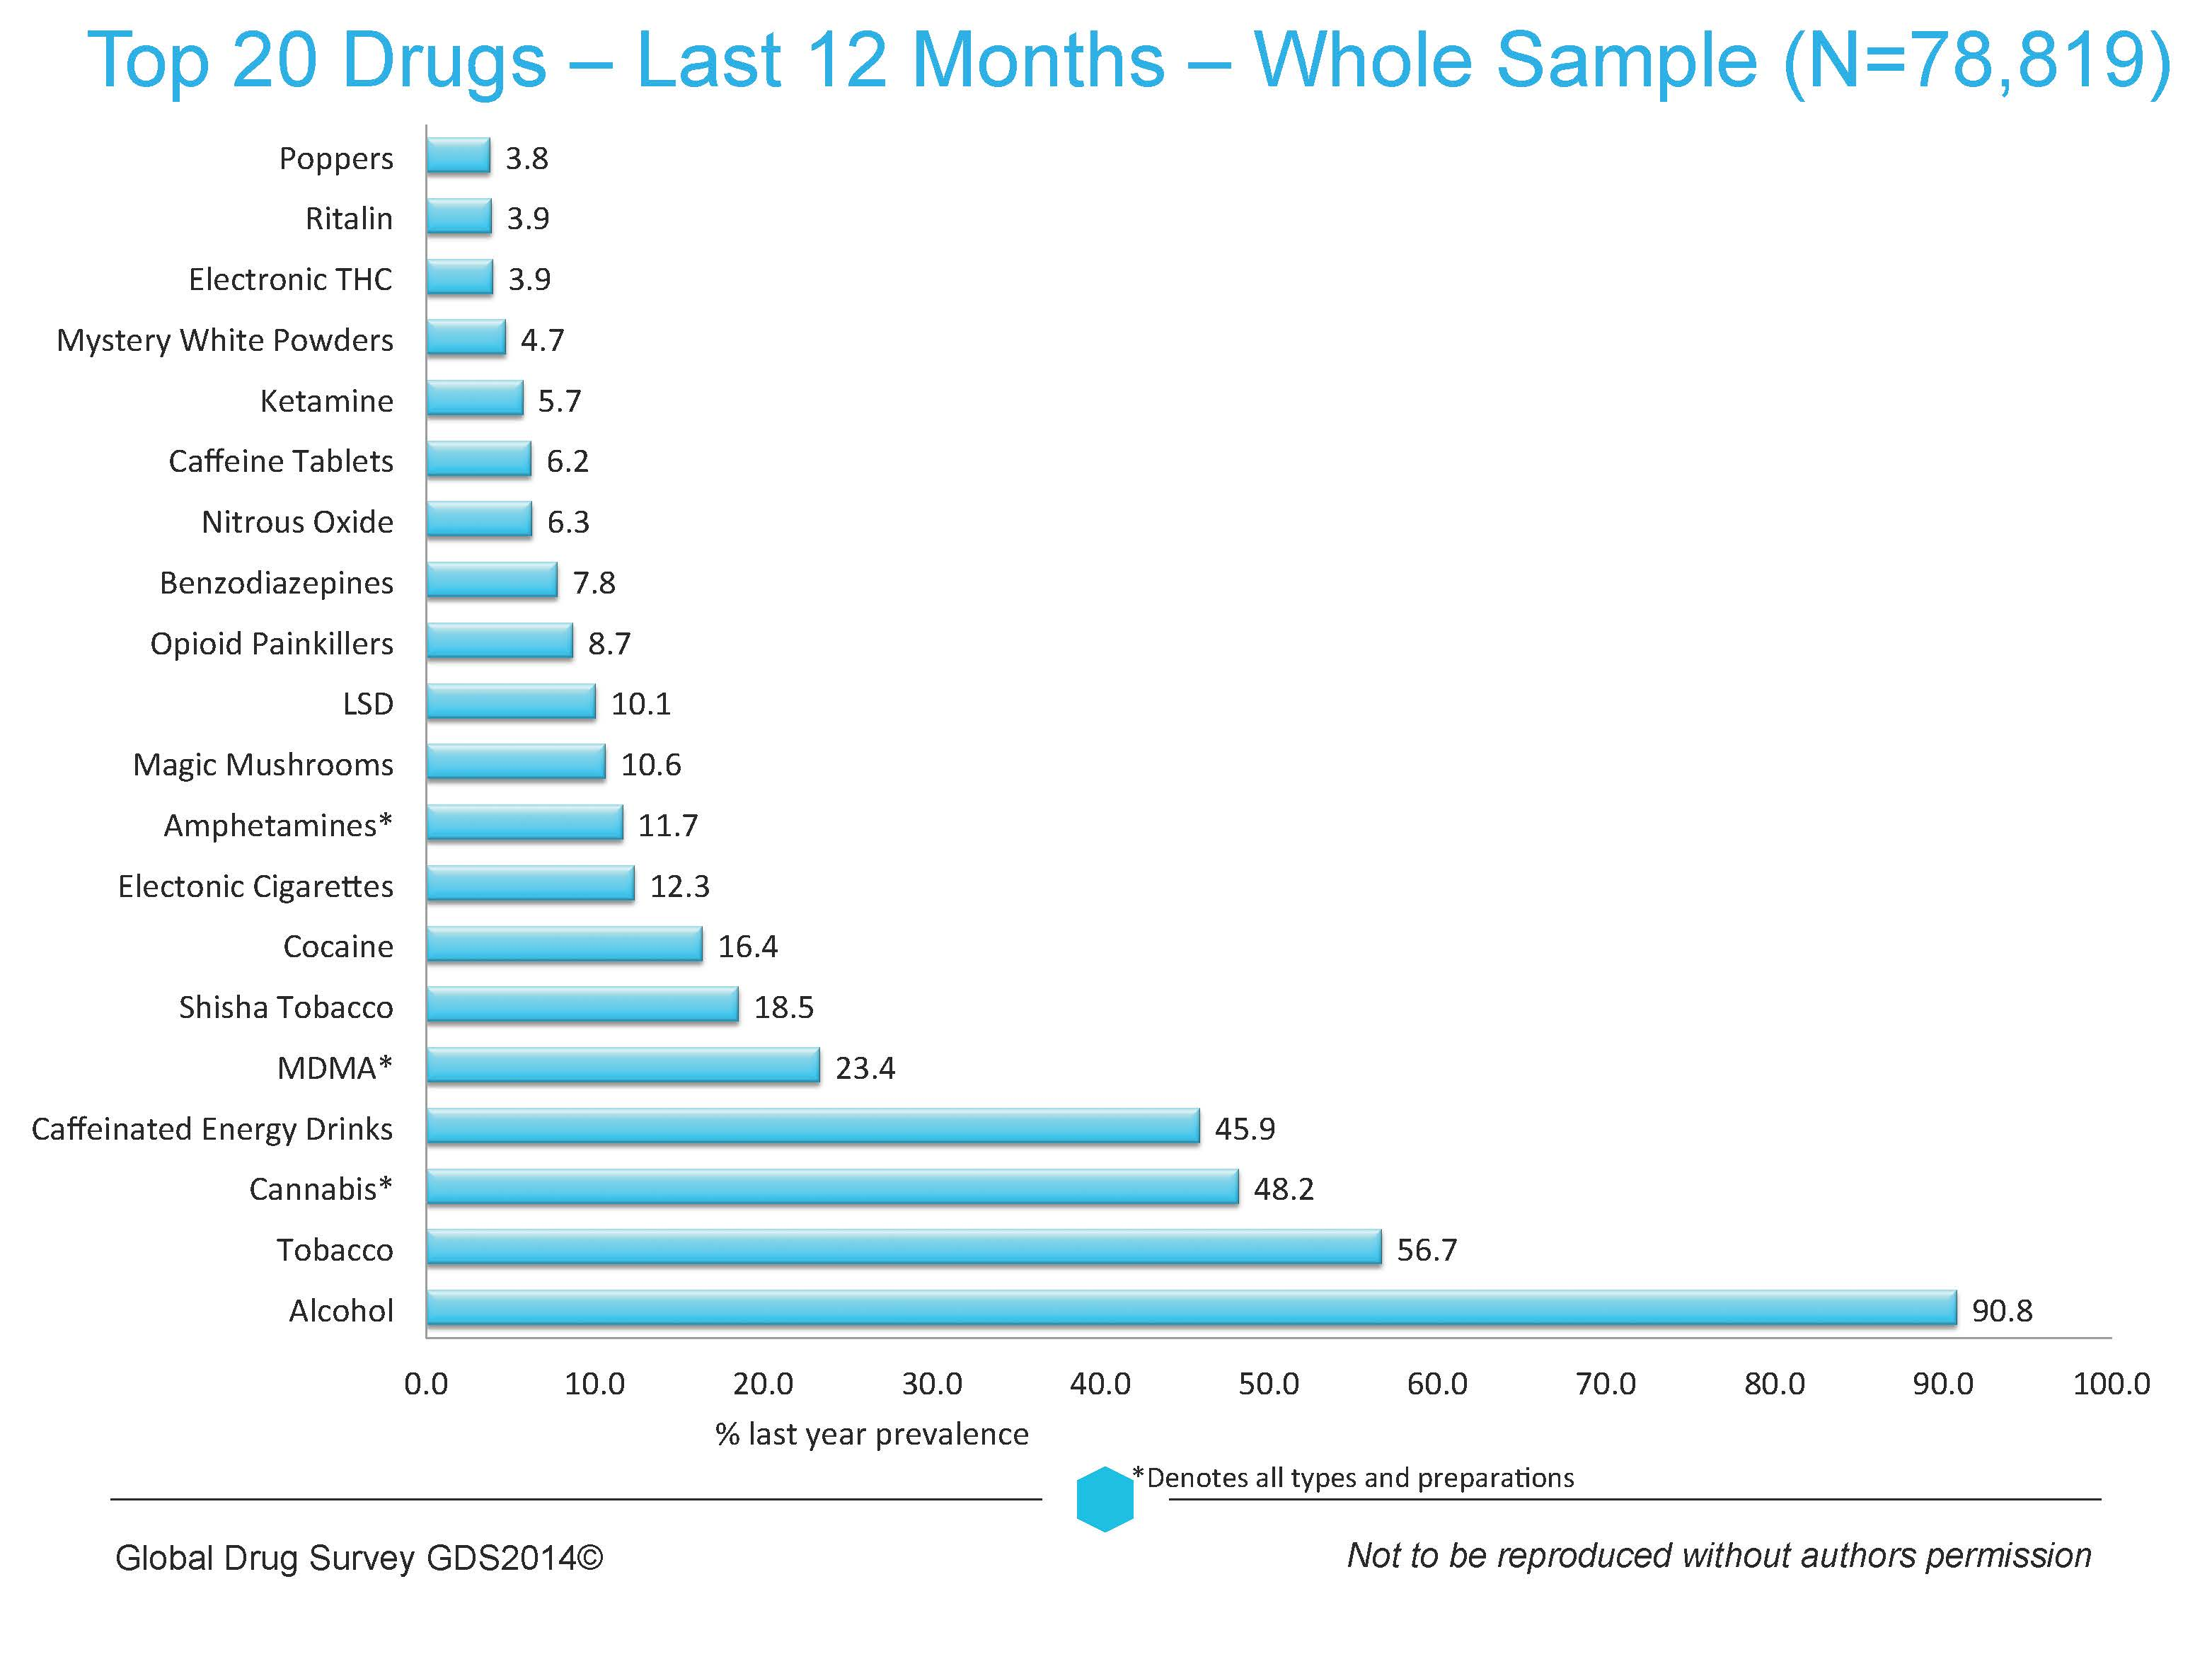 the global drug survey 2014 findings | global drug survey